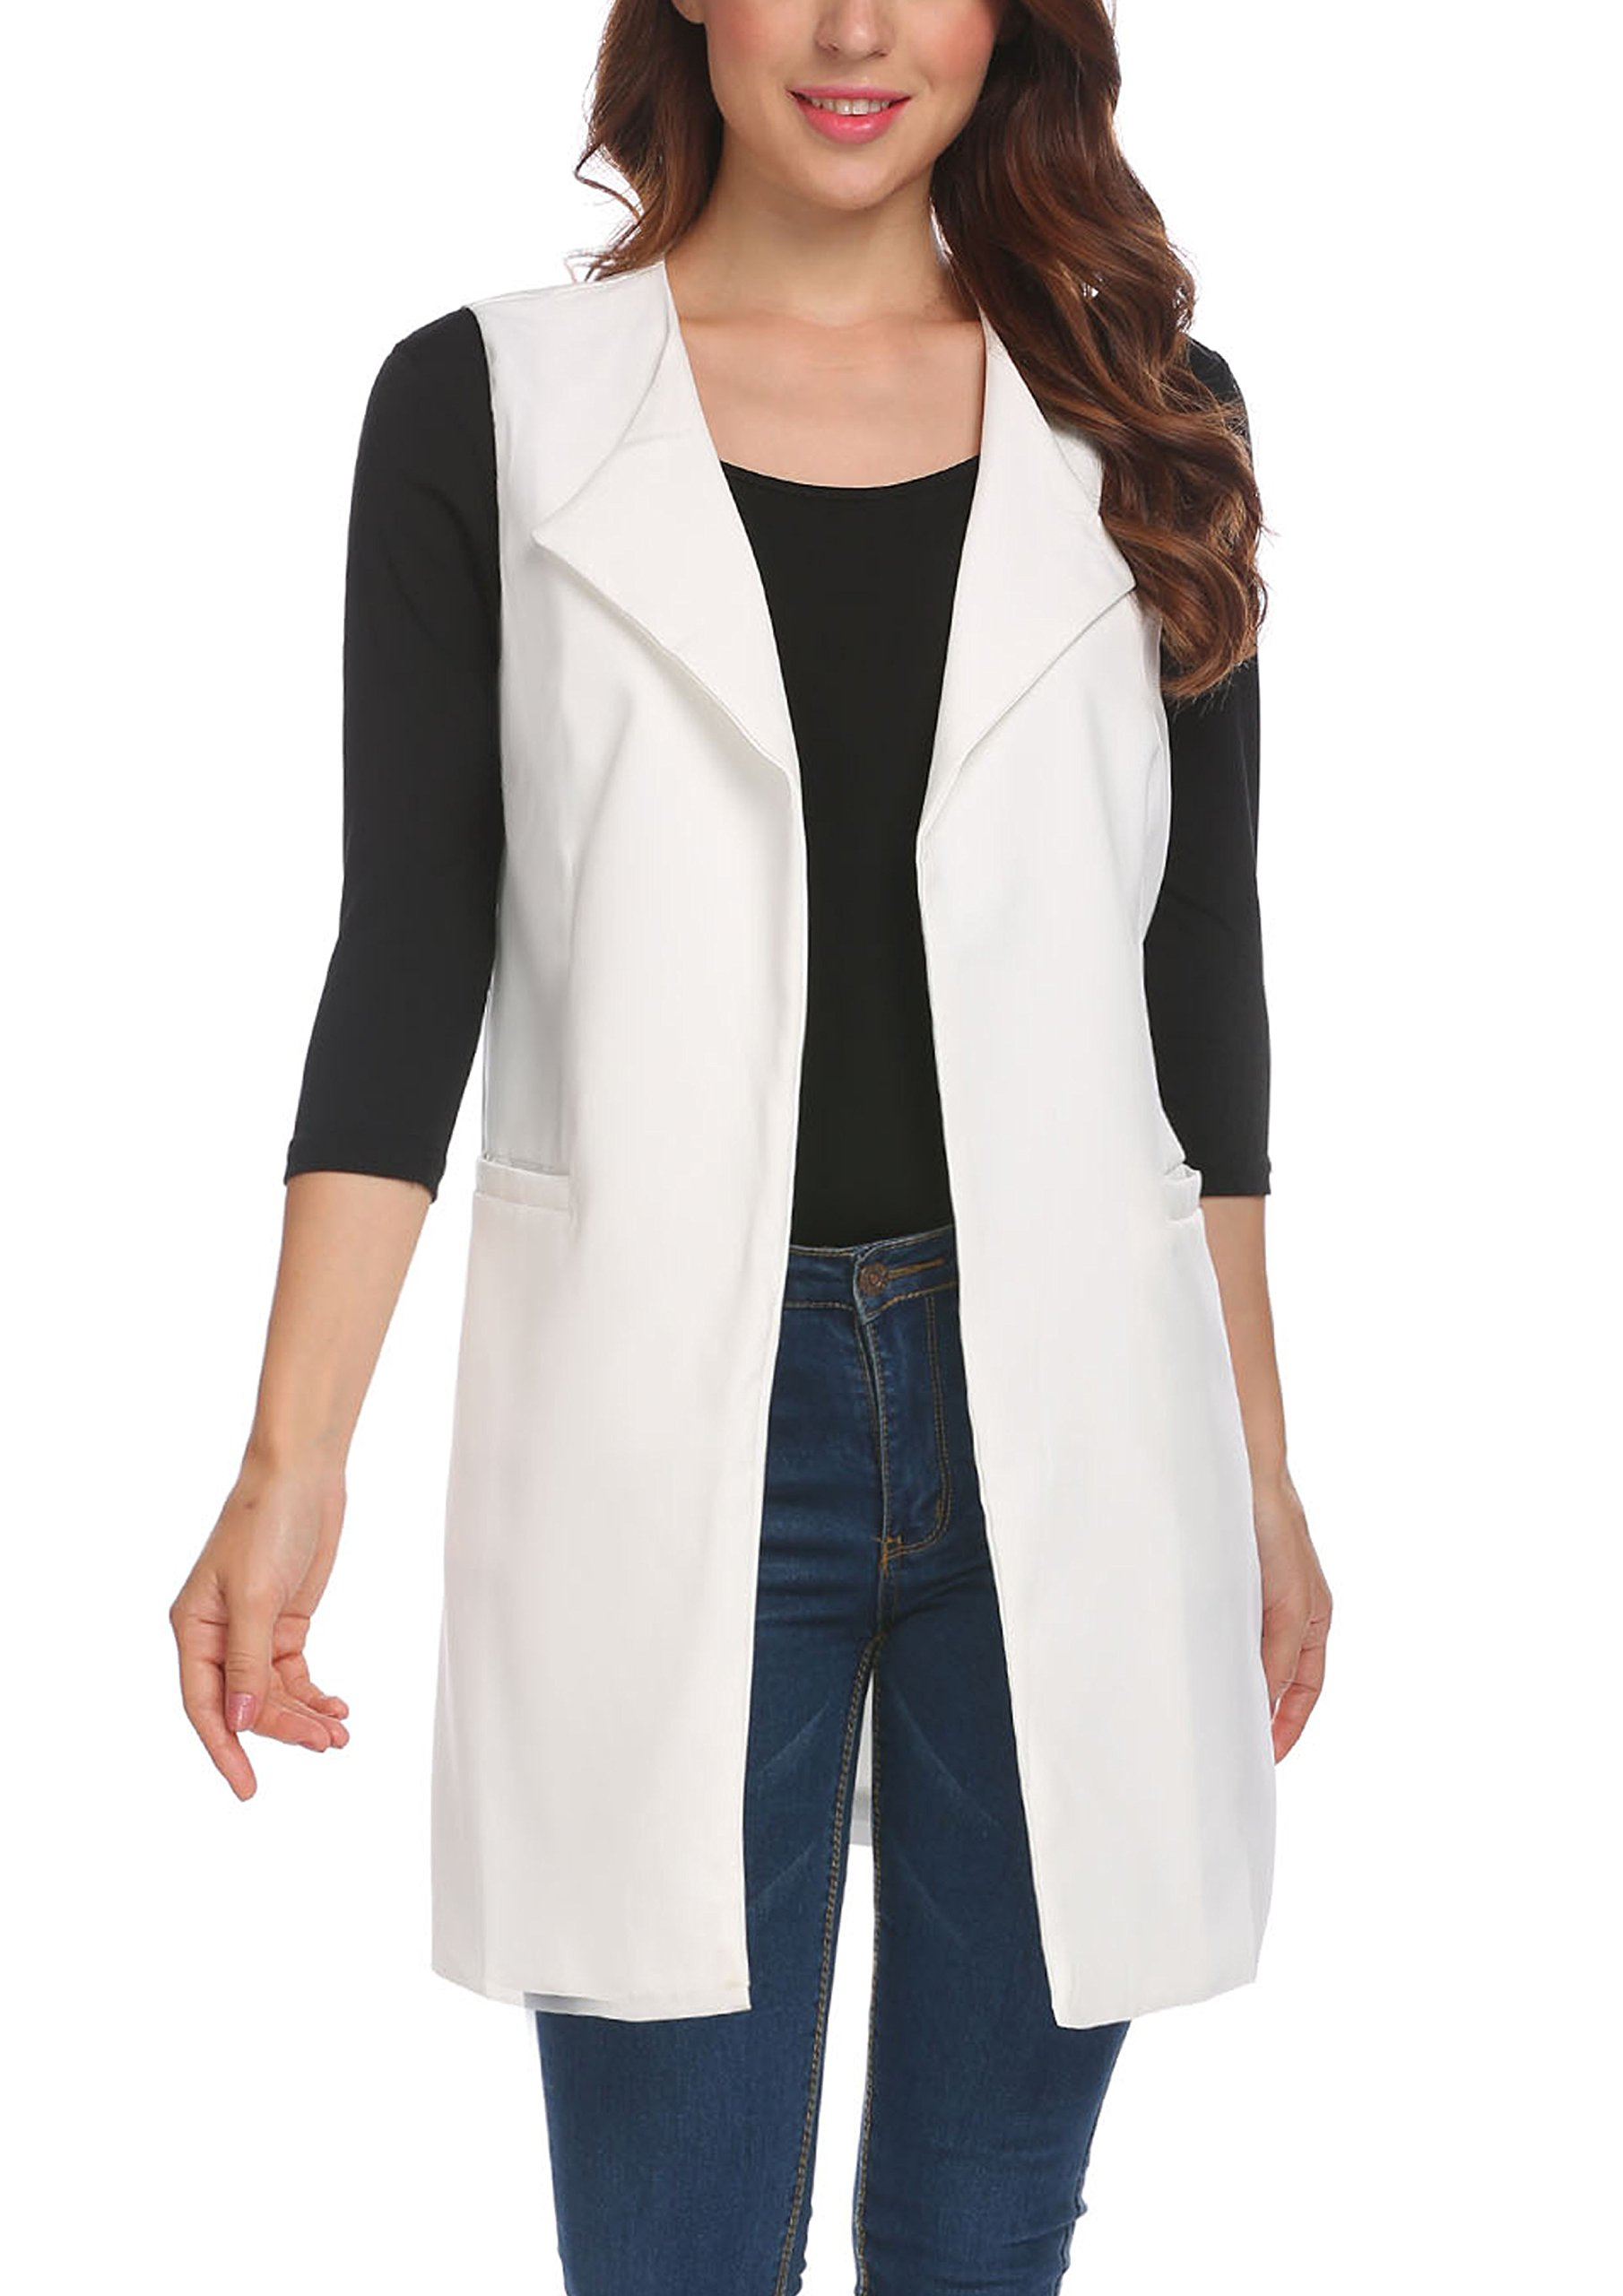 Beyove Women's Casual Sleeveless Solid Long Trench Coat Open Front Blazer Vest With Pockets